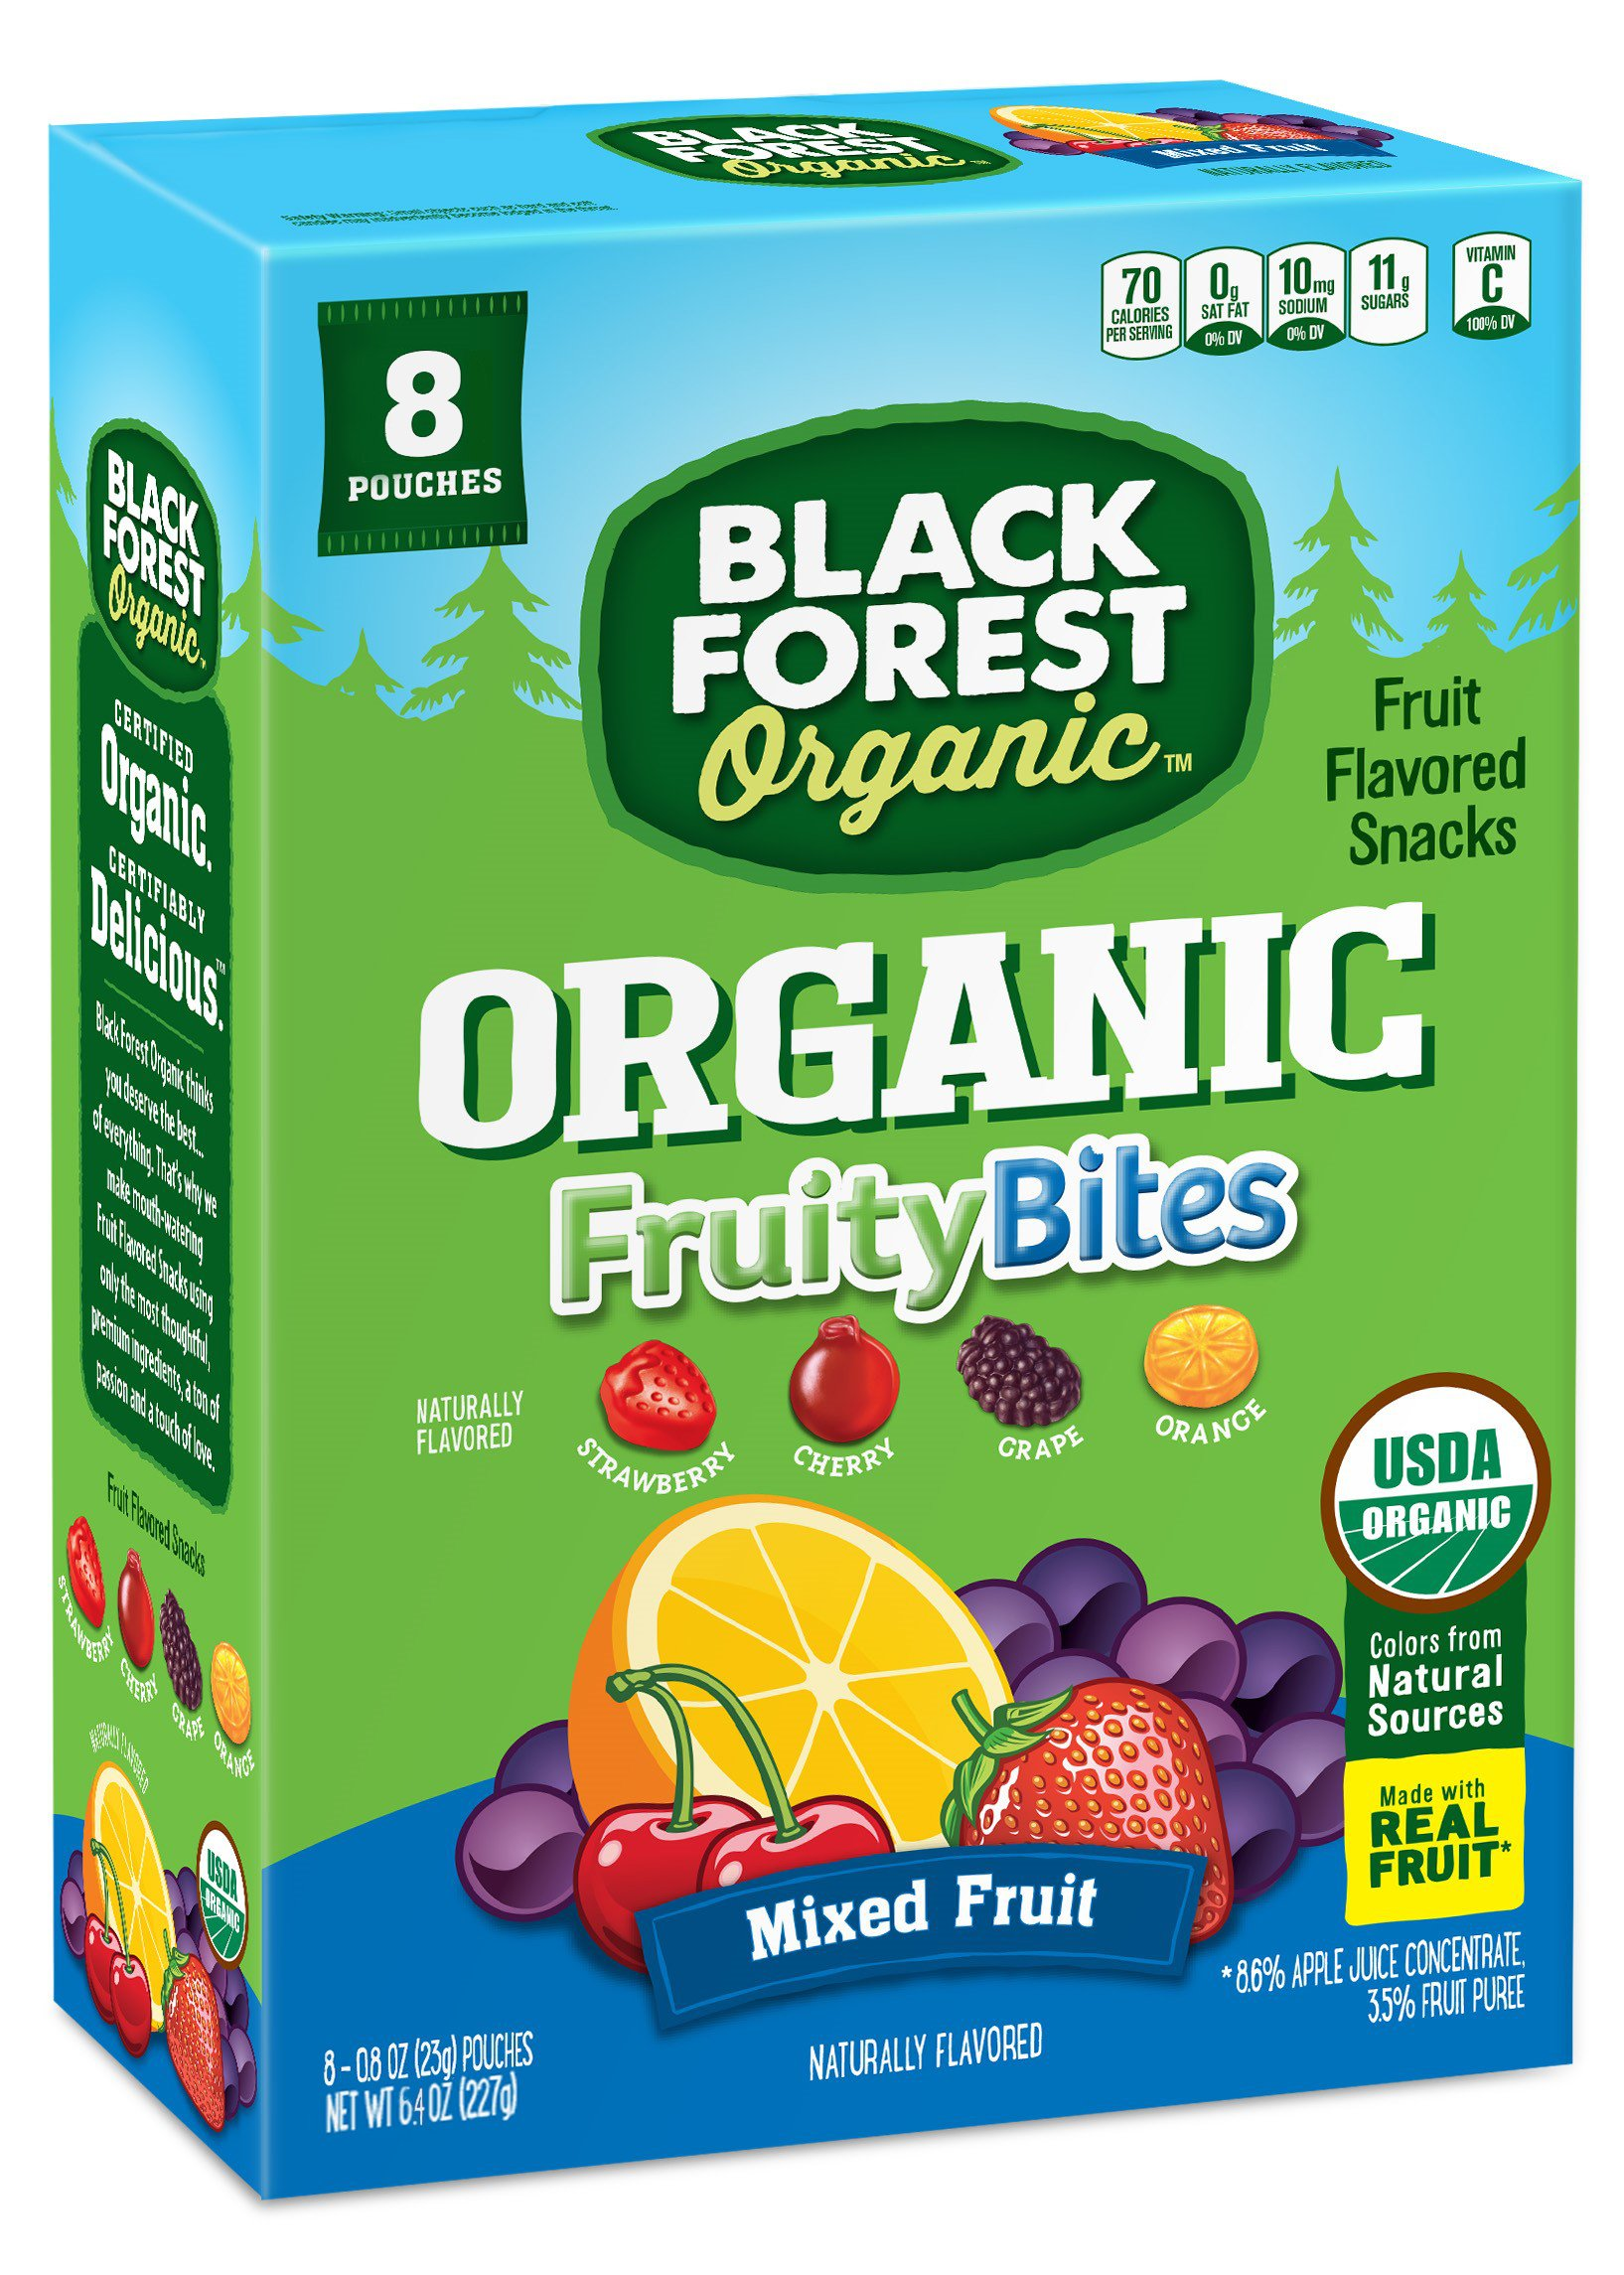 Black Forest Organic Fruity Bites Mixed Fruit Snacks, 0.8 Ounce Bag, 8 Count